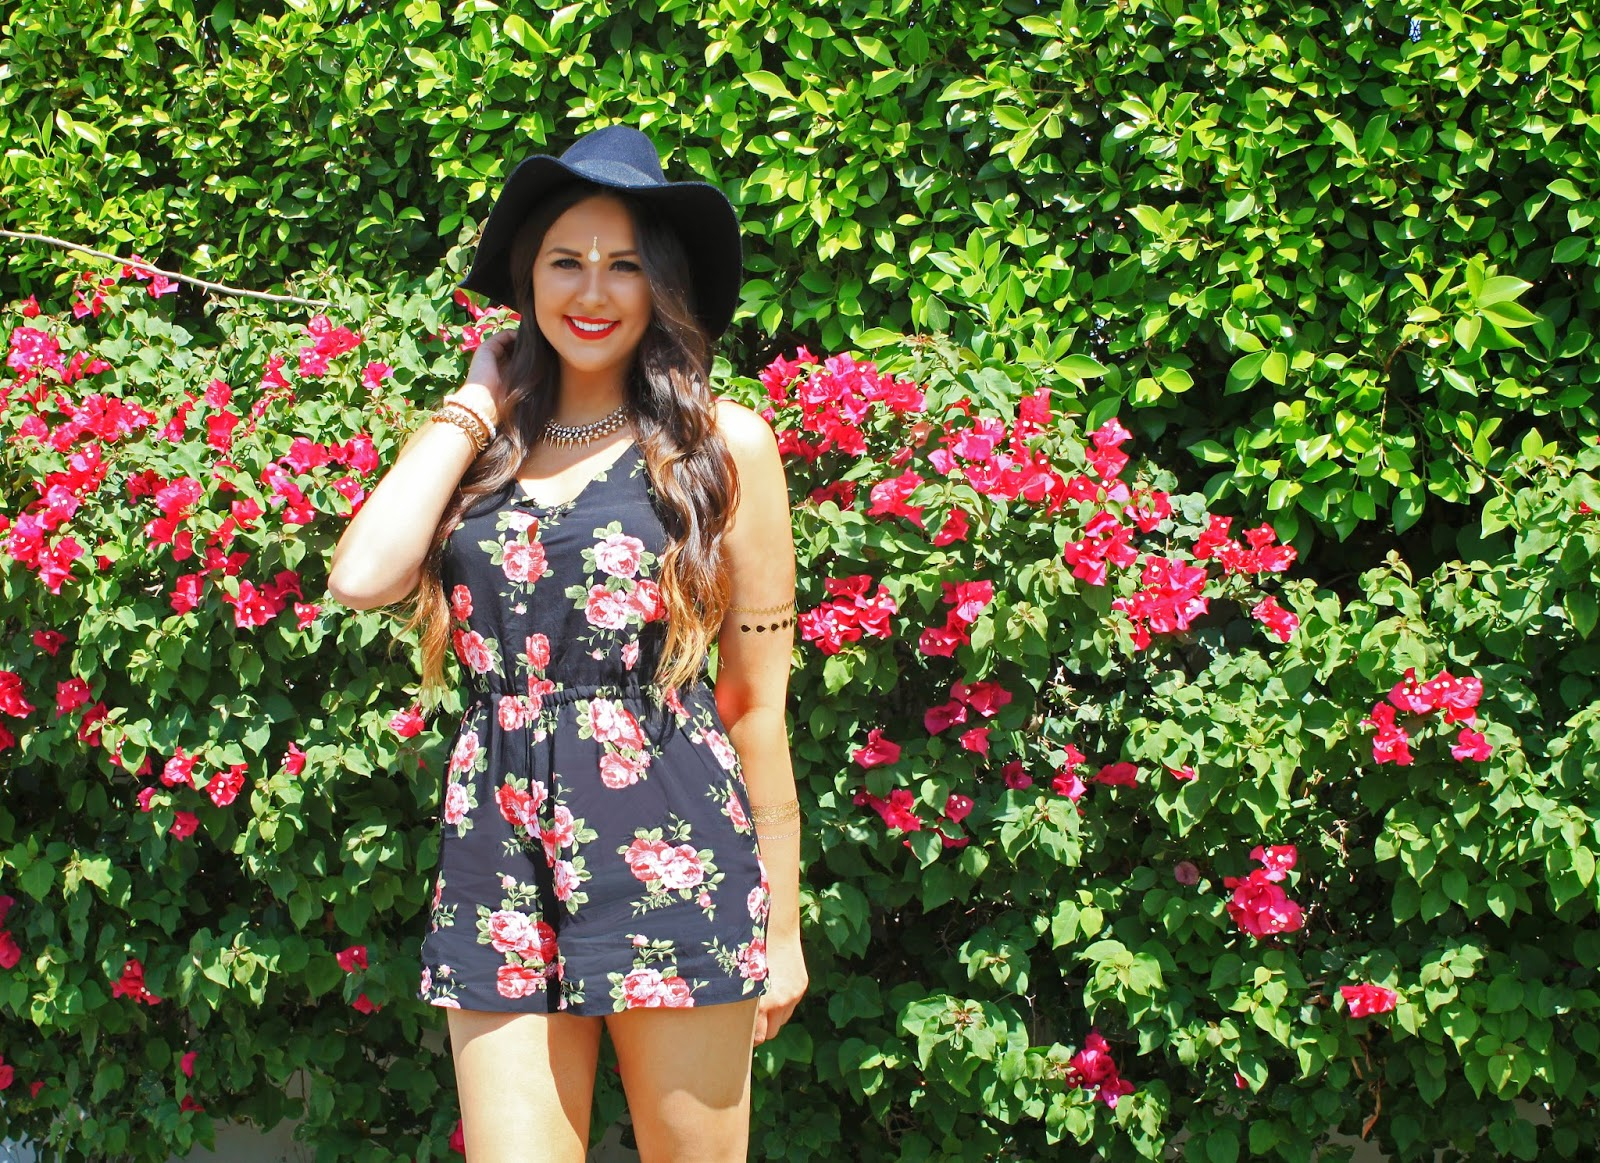 Fashion blogger Mash Elle shares what to wear to Coachella - What to Wear to Coachella by popular Orlando fashion blogger, Mash Elle